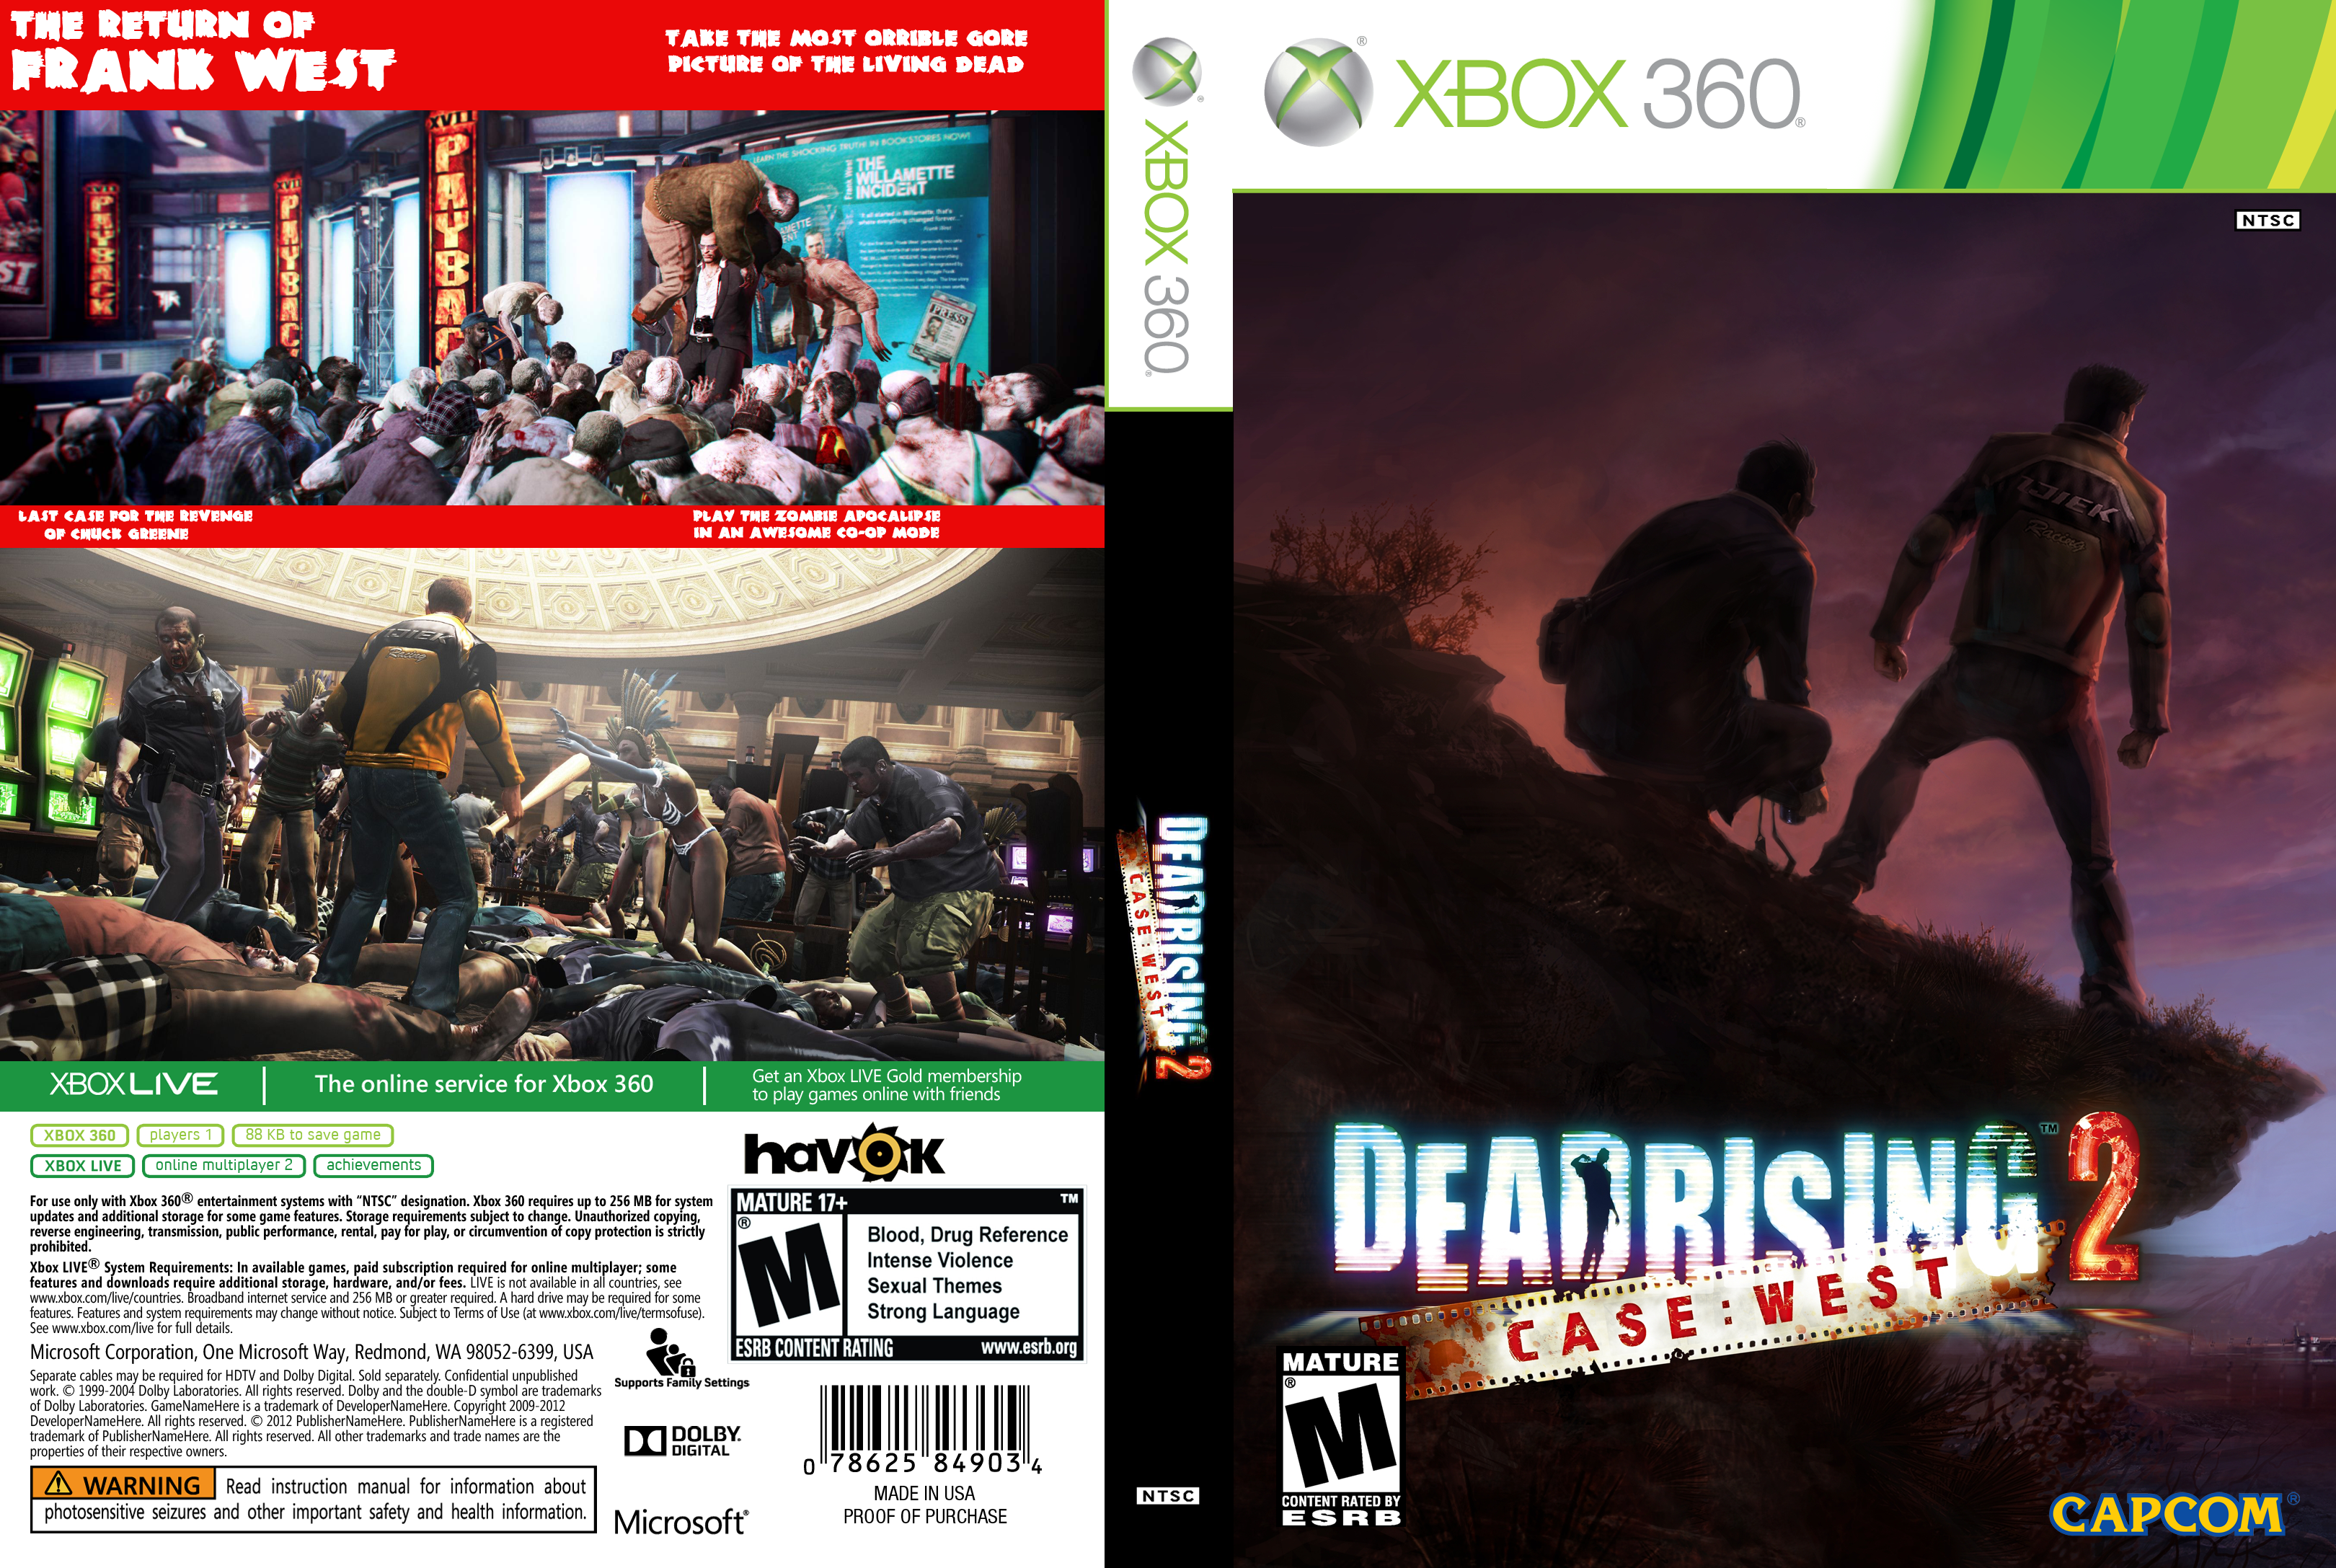 Dead Rising 2: Case West box cover